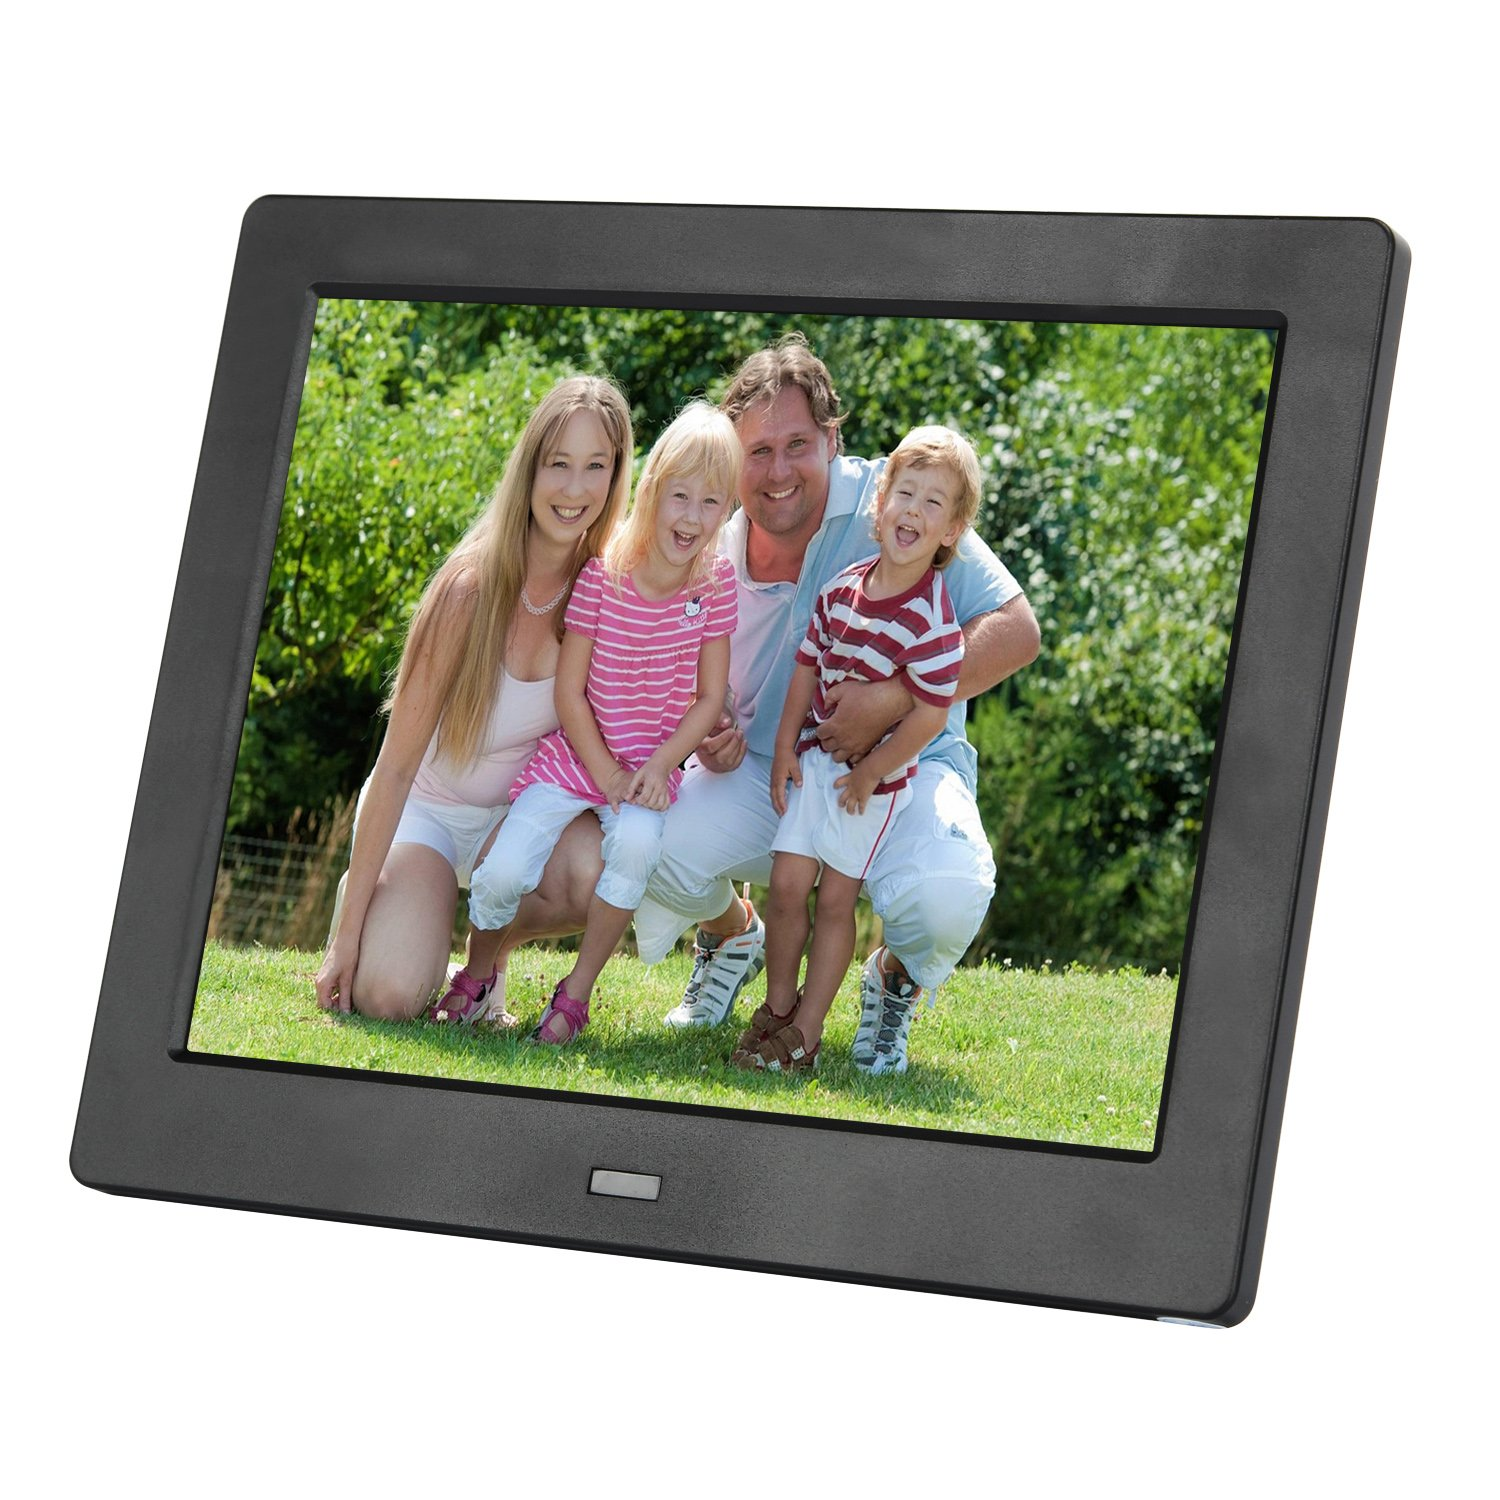 Digital Picture Photo Frame 8 Inch IPS Widescreen Electronic Picture Frame High Definition(1080P) with LCD Display 1024x768,No USB/SD Included,with Wireless Remote Control(Black) by Acecharming (Image #3)